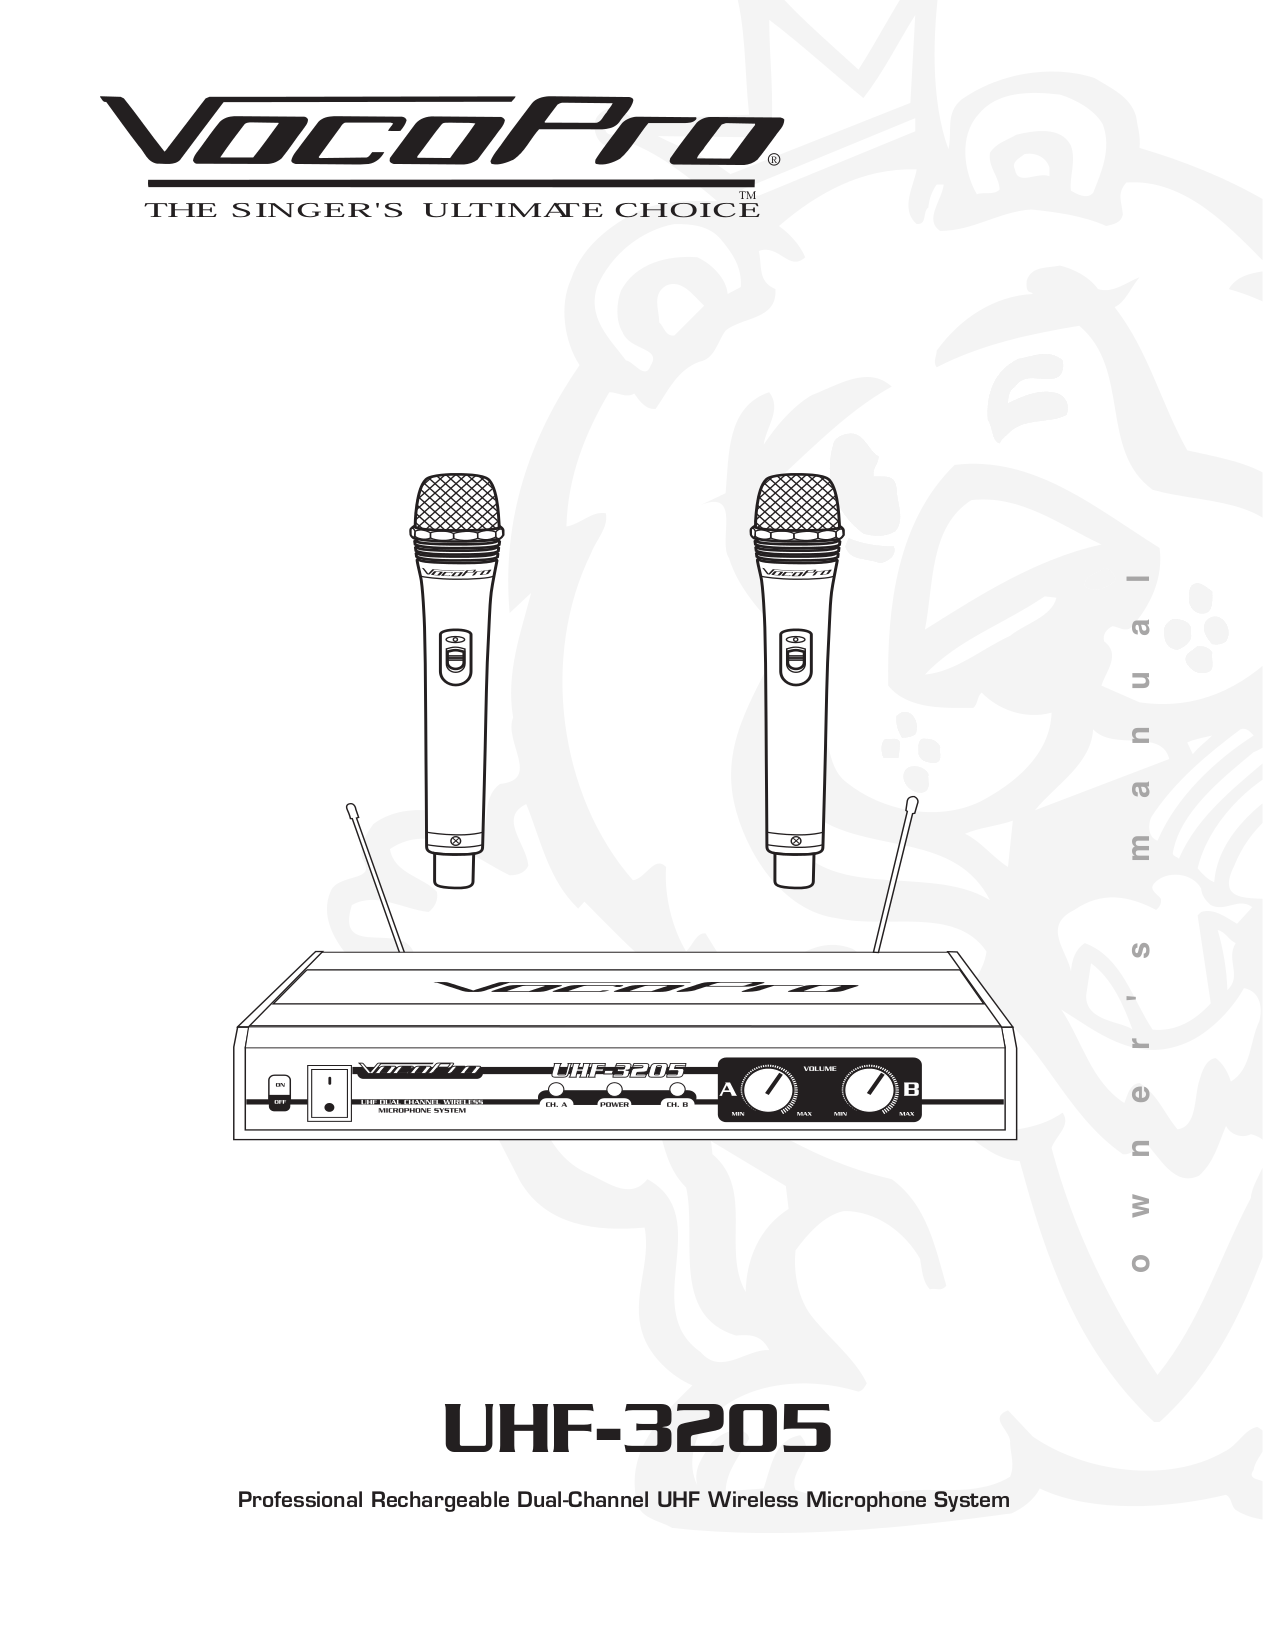 pdf for VocoPro Other UHF-3205 Wireless Microphone manual